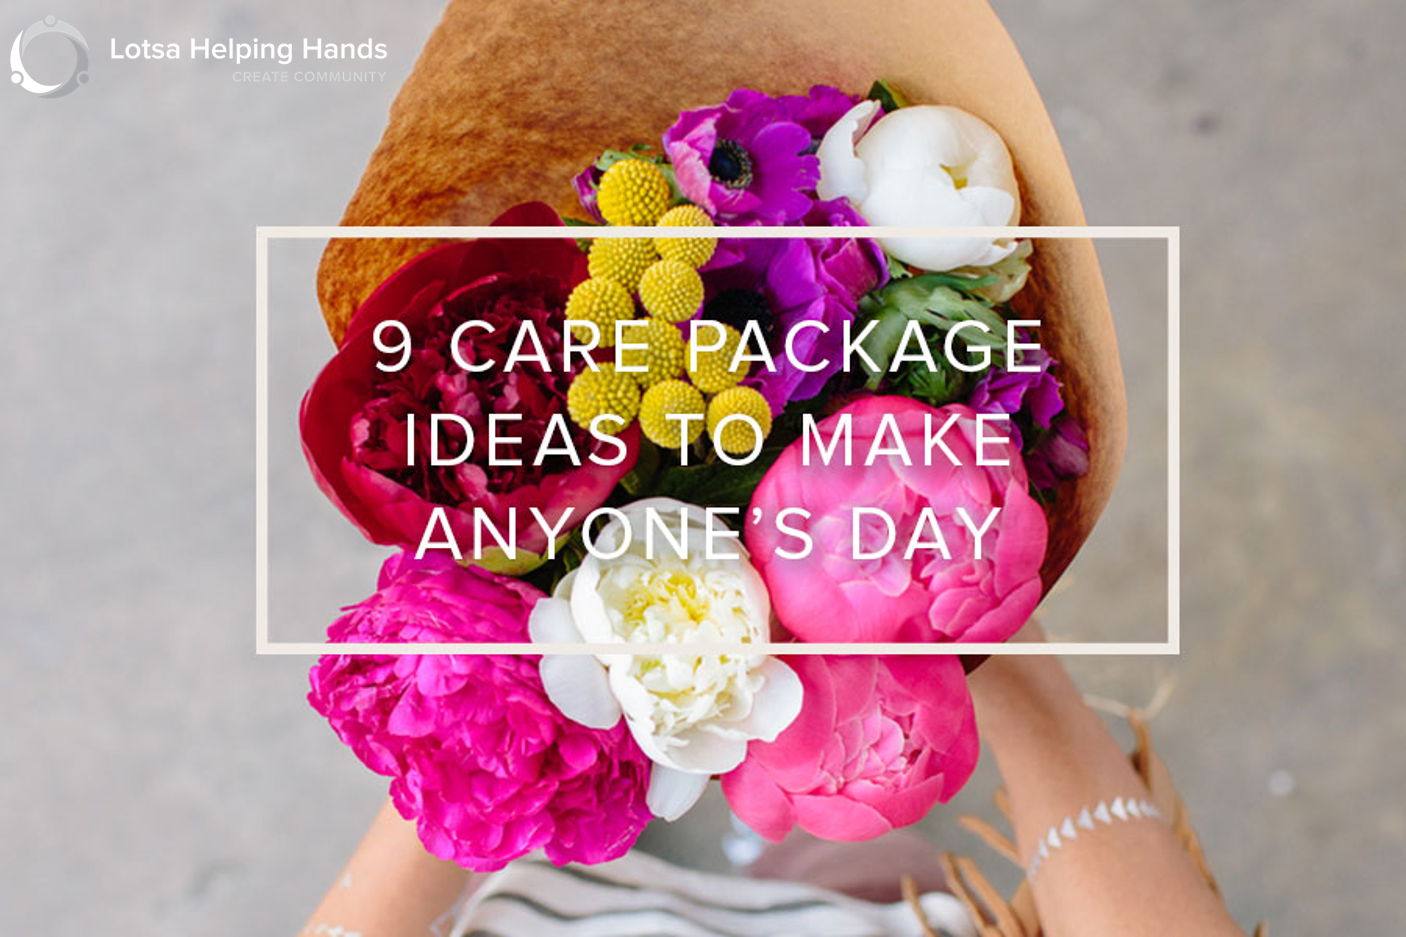 9 Care Package Ideas To Make Anyones Day